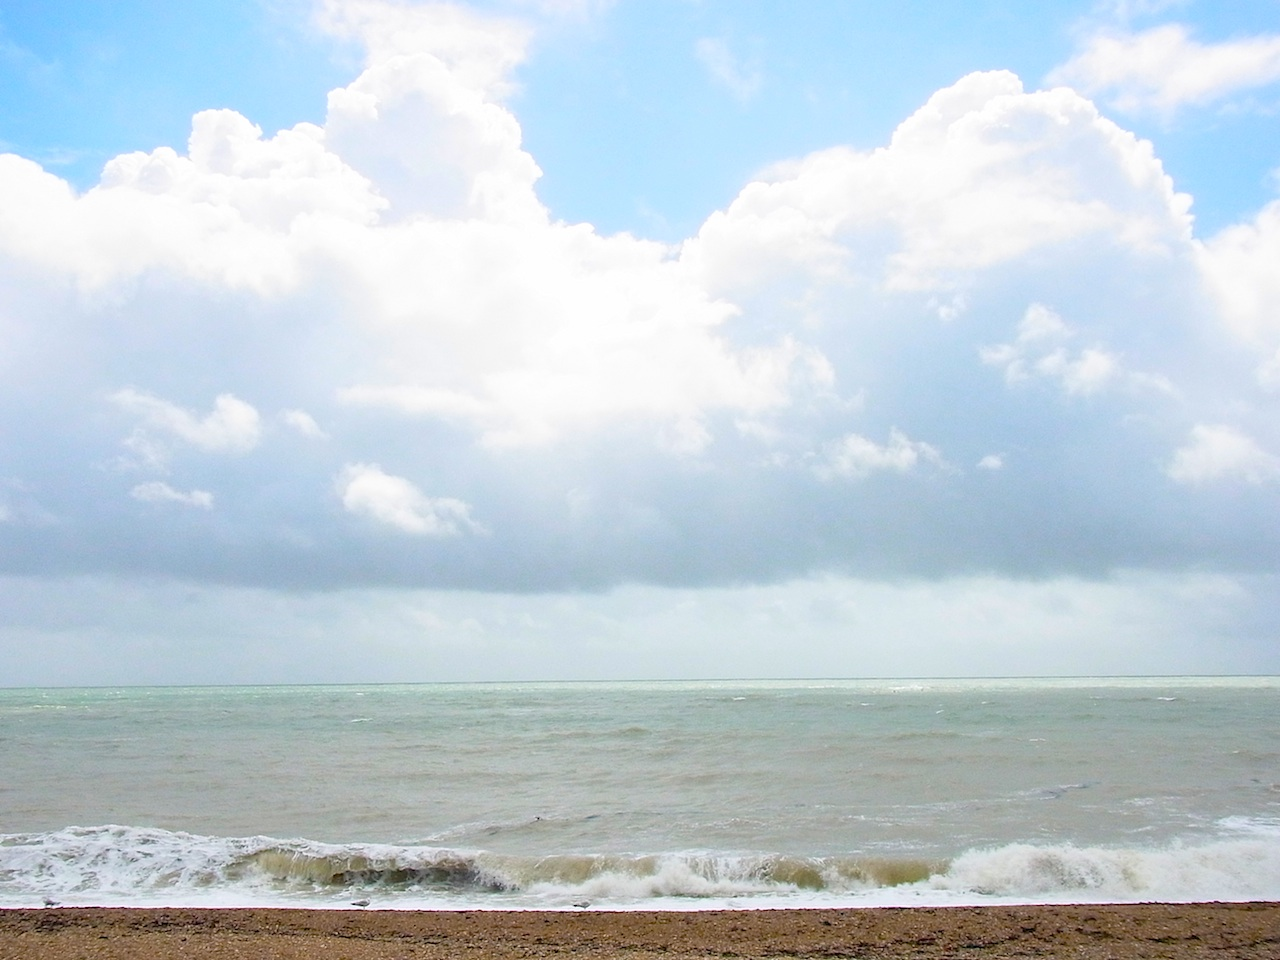 eastbournesea2.jpg